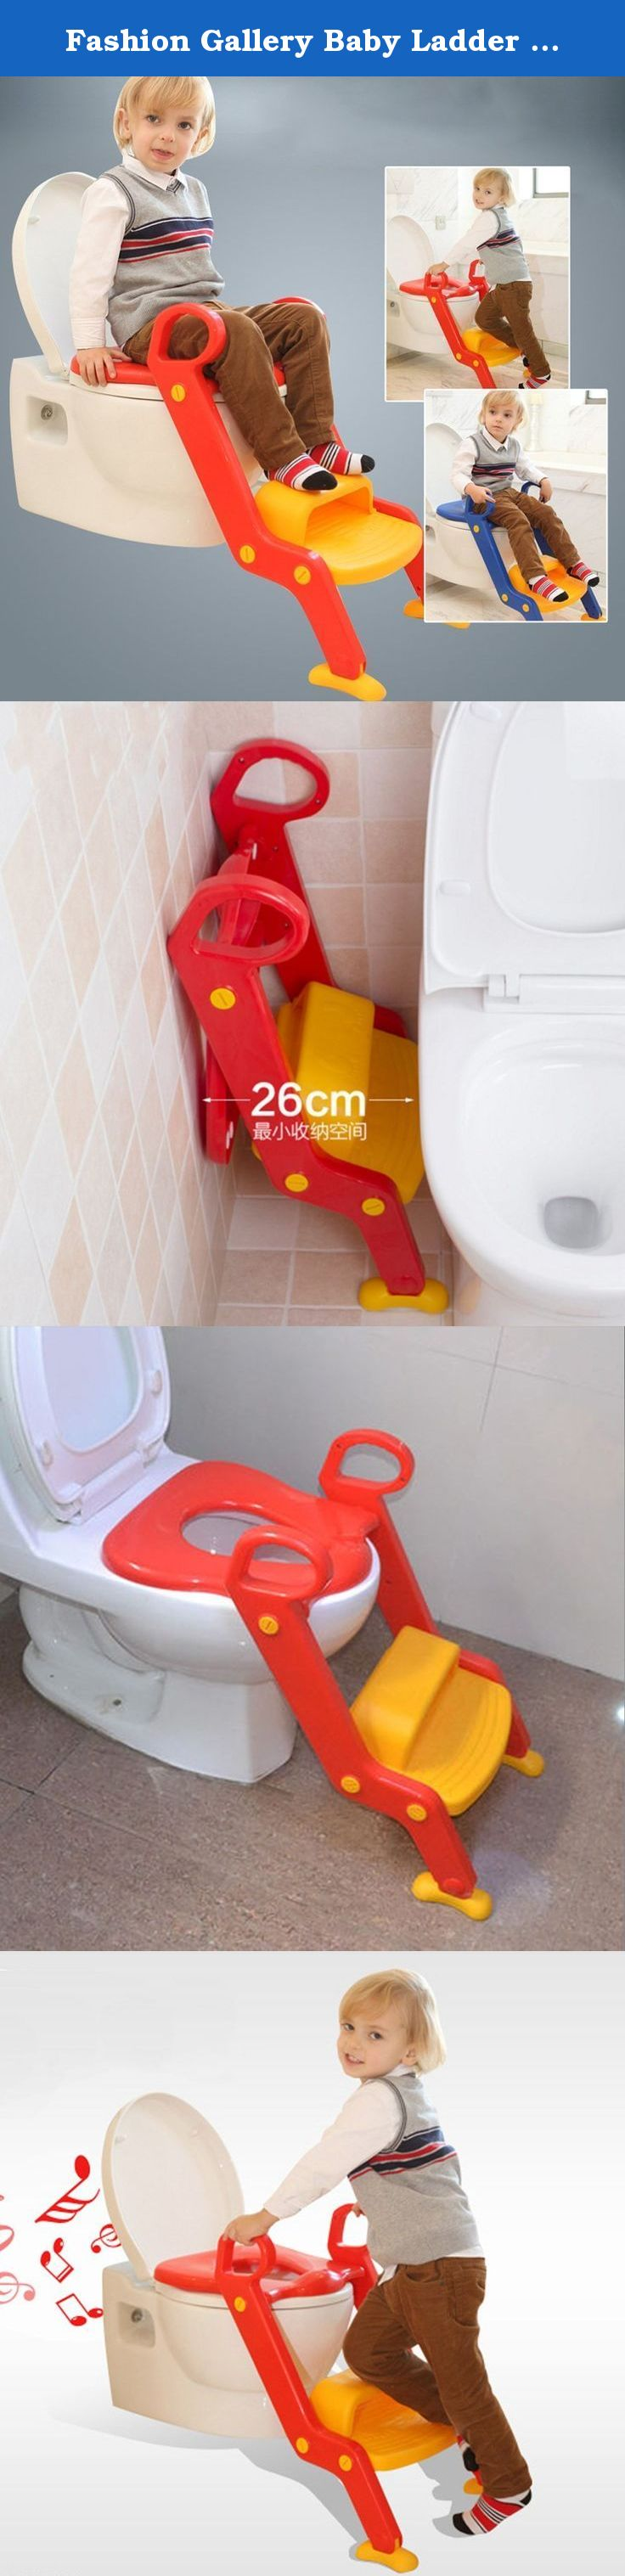 Fashion Gallery Baby Ladder Portable Chair Toilet Adjustable Steps Trainer Potty Seat Step Stool With Anti : potty chair step stool - islam-shia.org